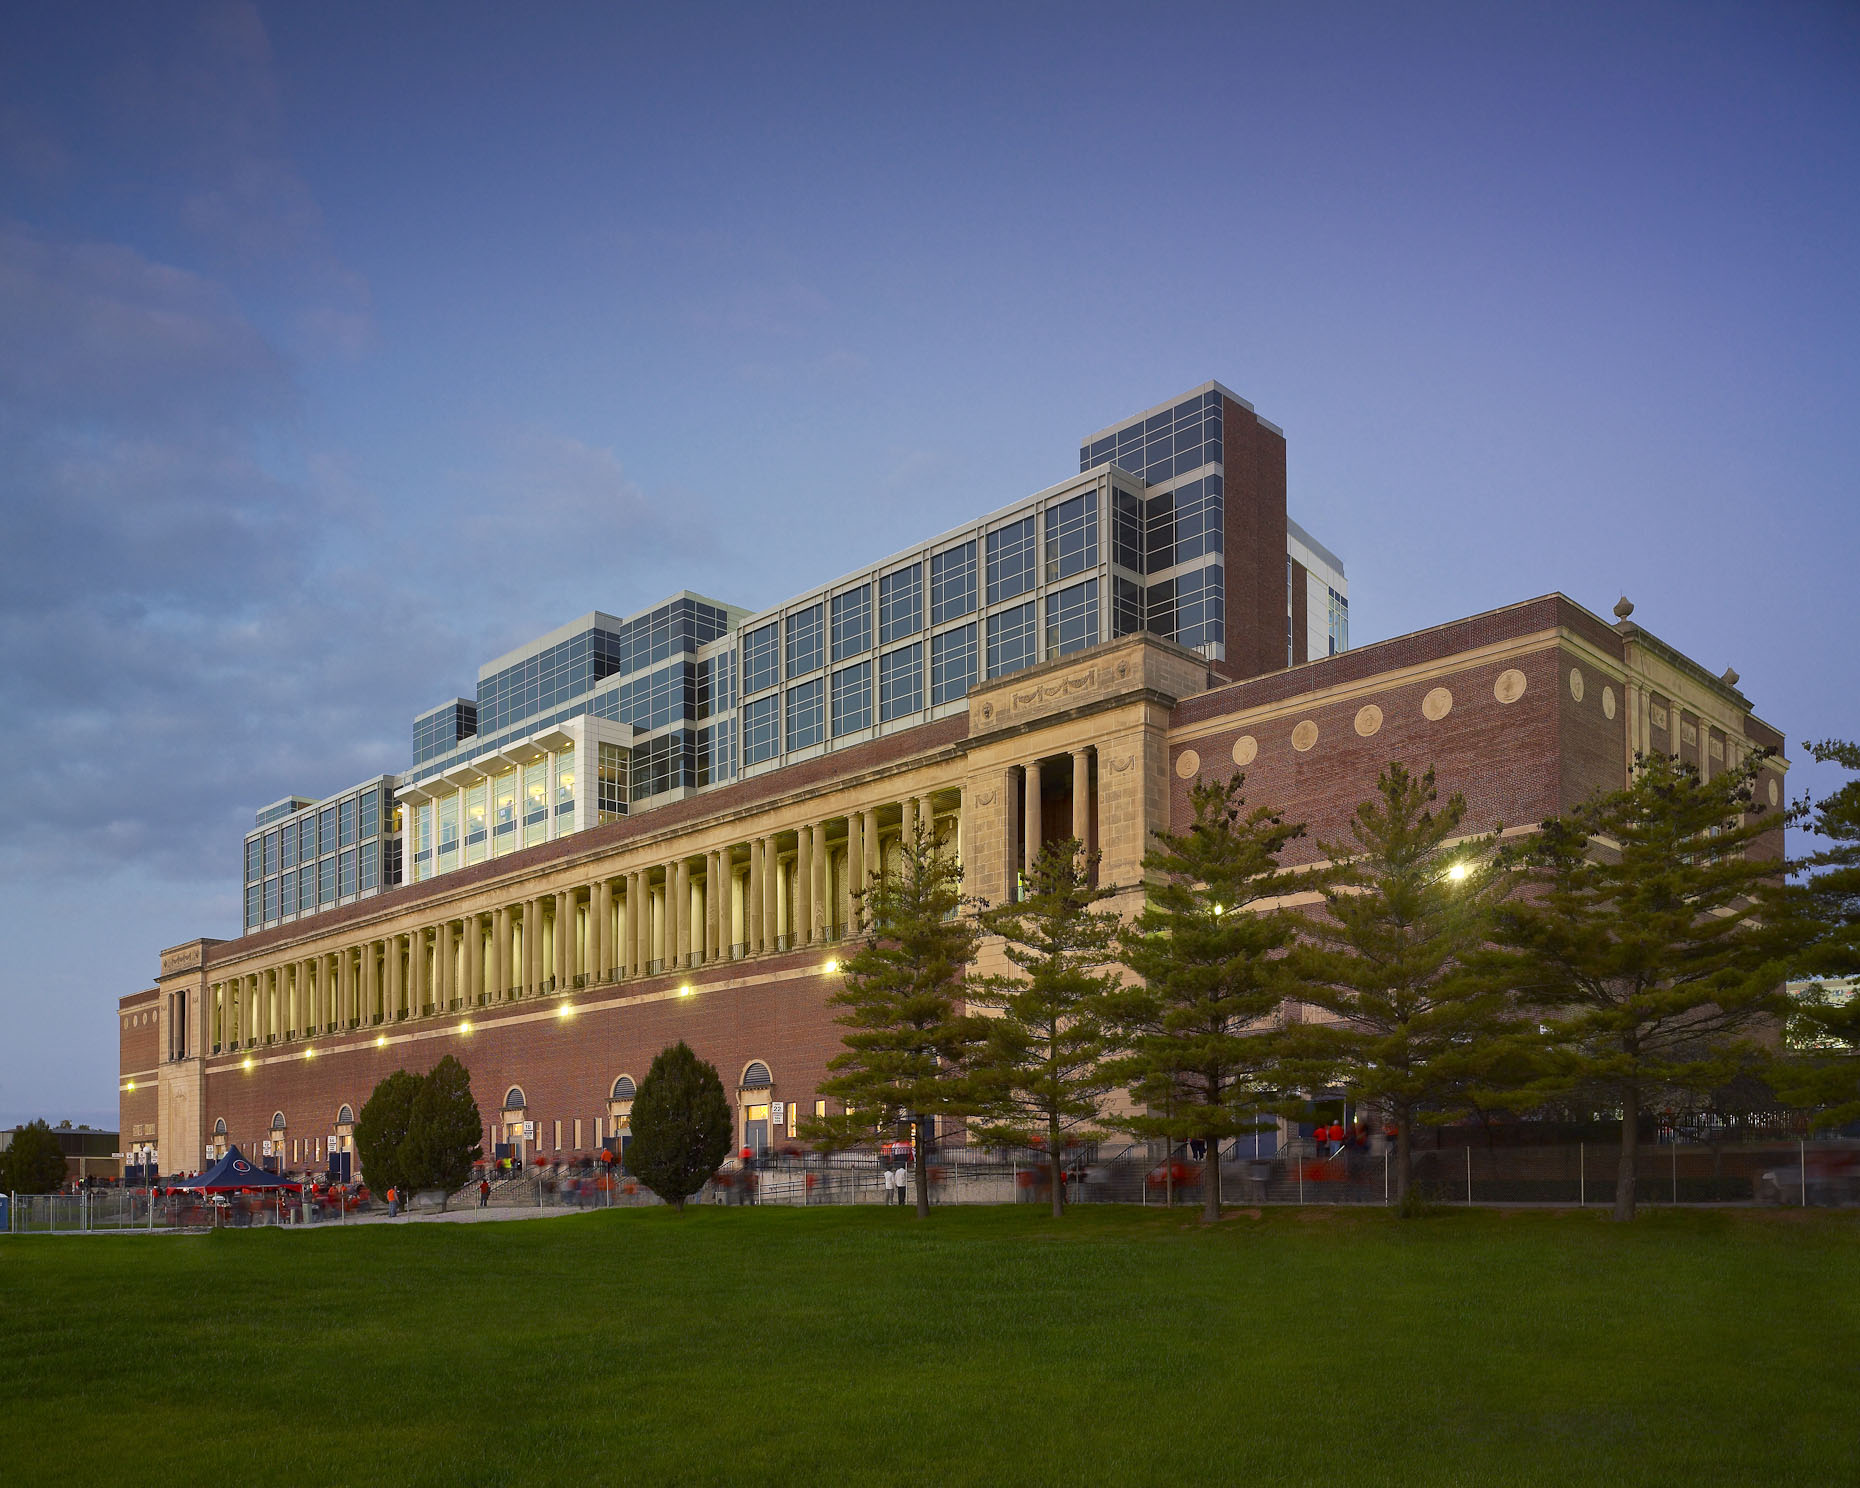 University of Illinois Memorial Stadium by HNTB photographed by BRad Feinknopf based in Columbus, Ohio